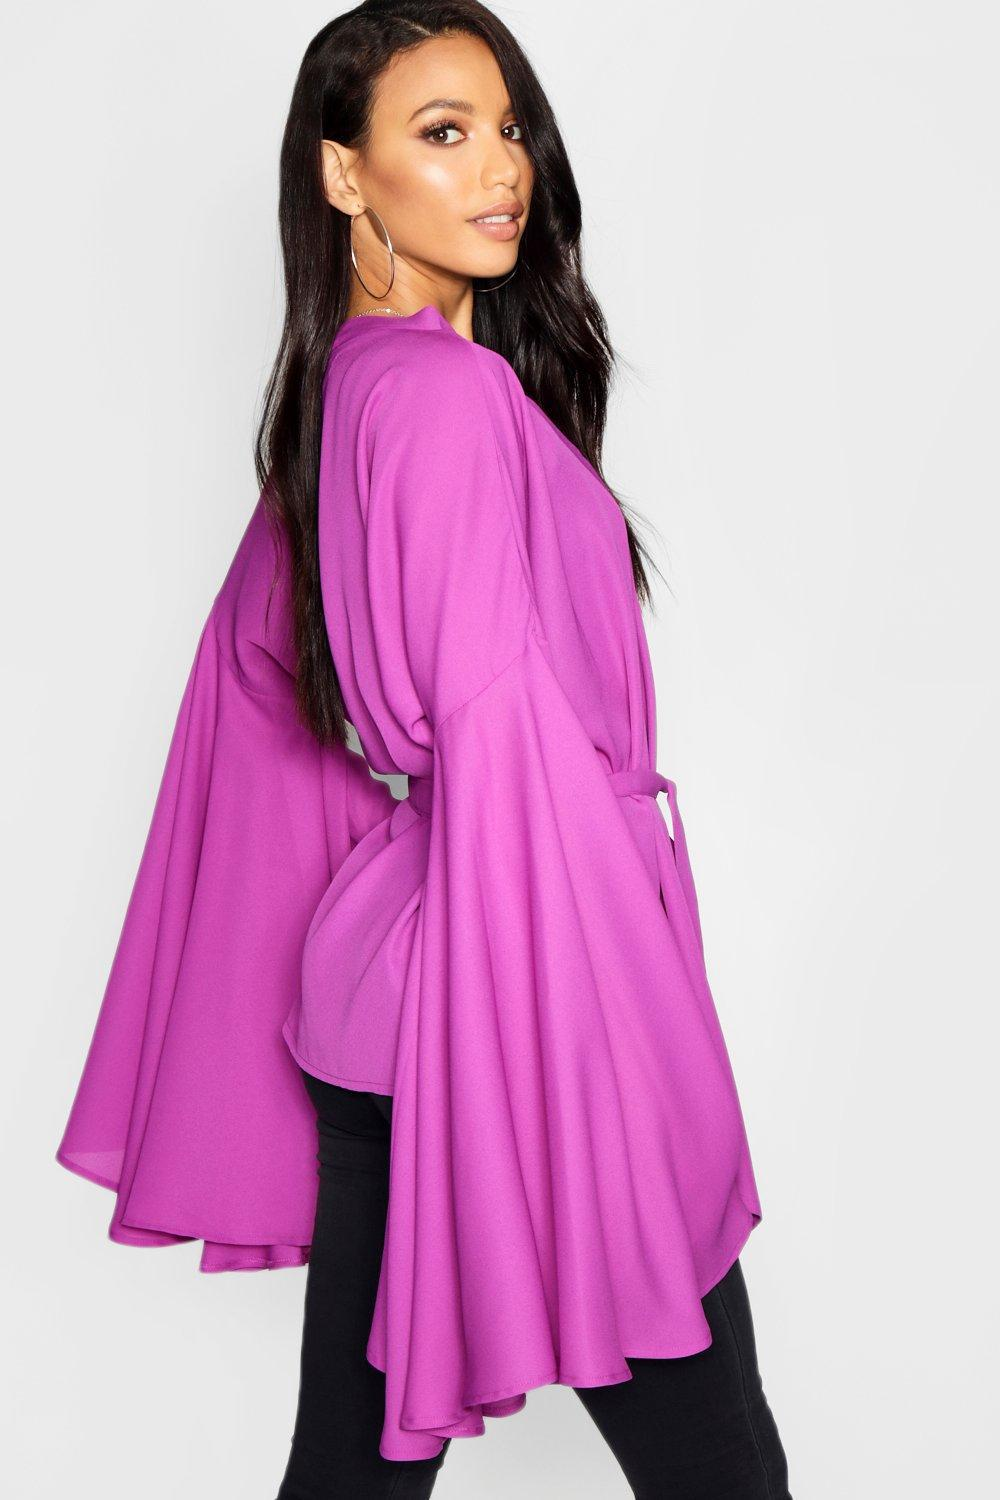 fabee9a003 Lyst - Boohoo Extreme Sleeve Tie Wrap Kimono Blouse in Red